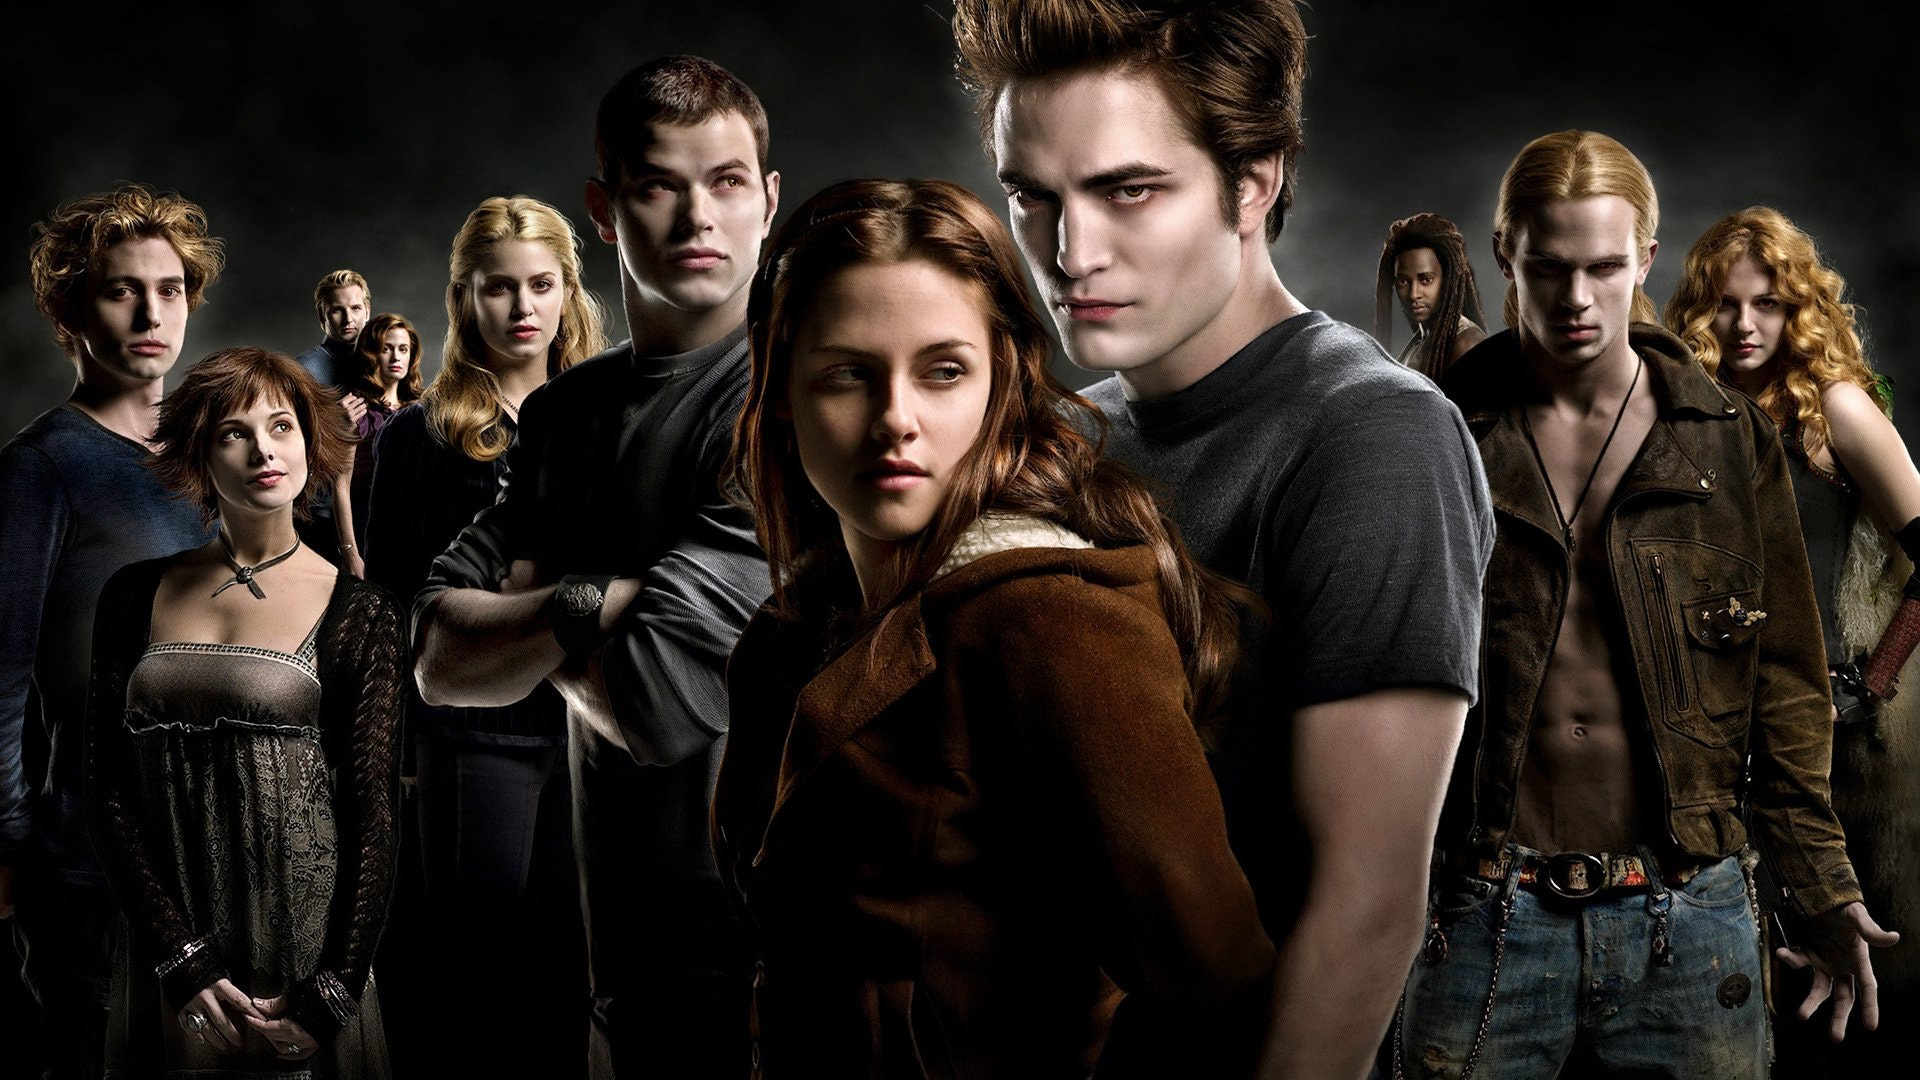 twilight soundtrack music complete song list tunefind